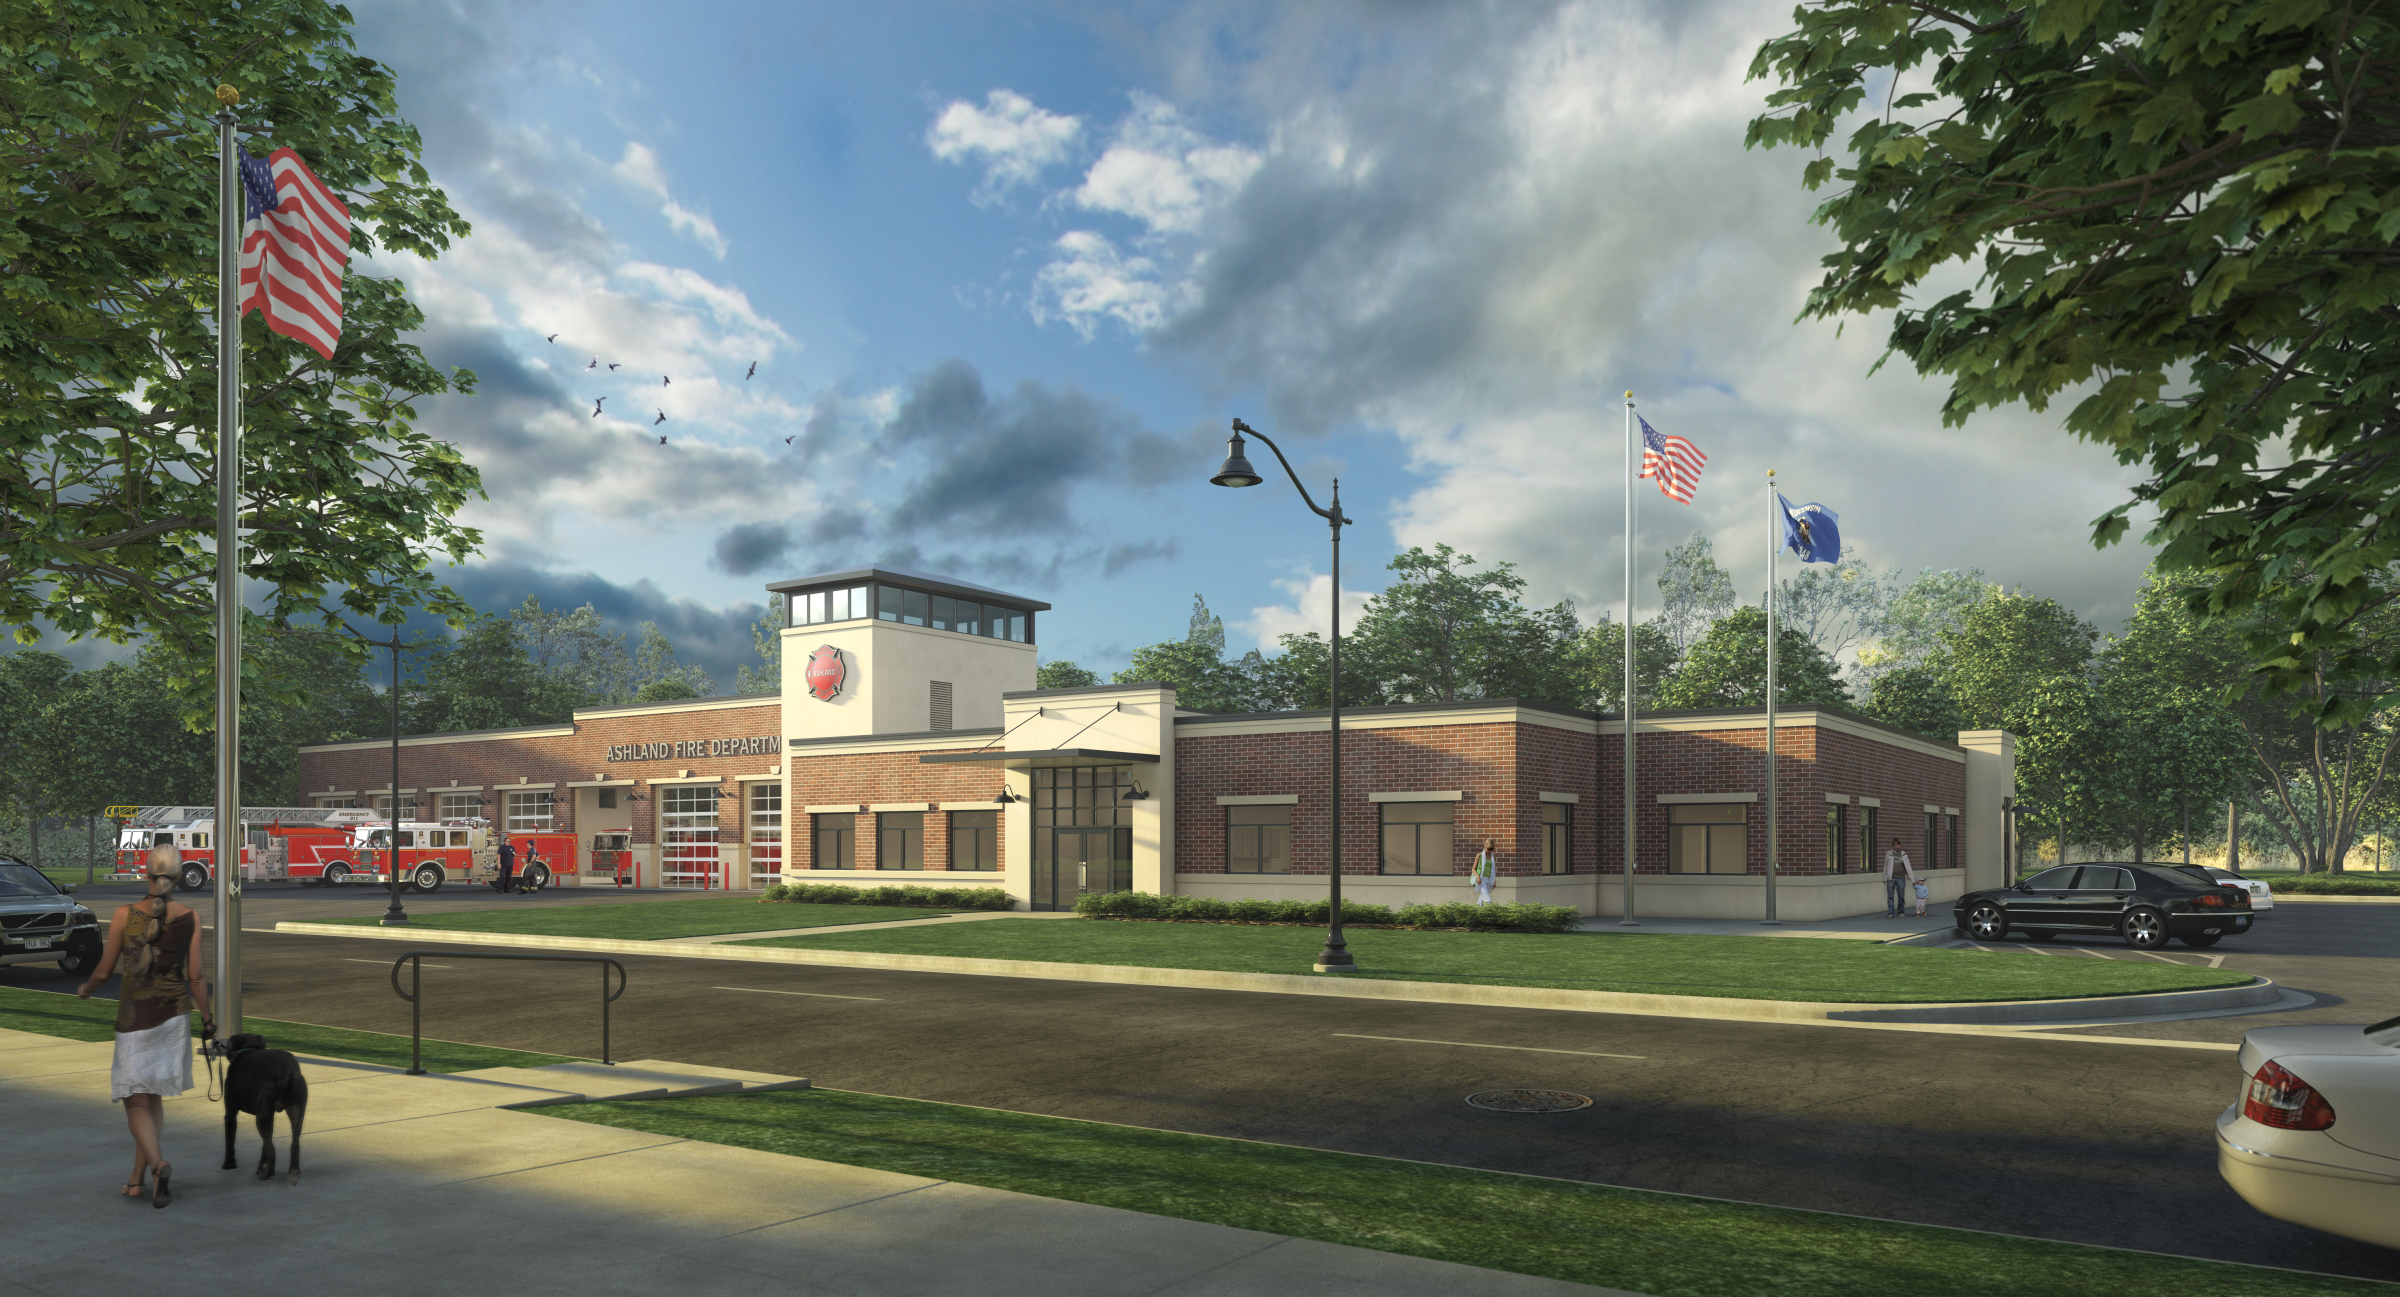 ADG_Ashland Fire Department_01_2400px.png